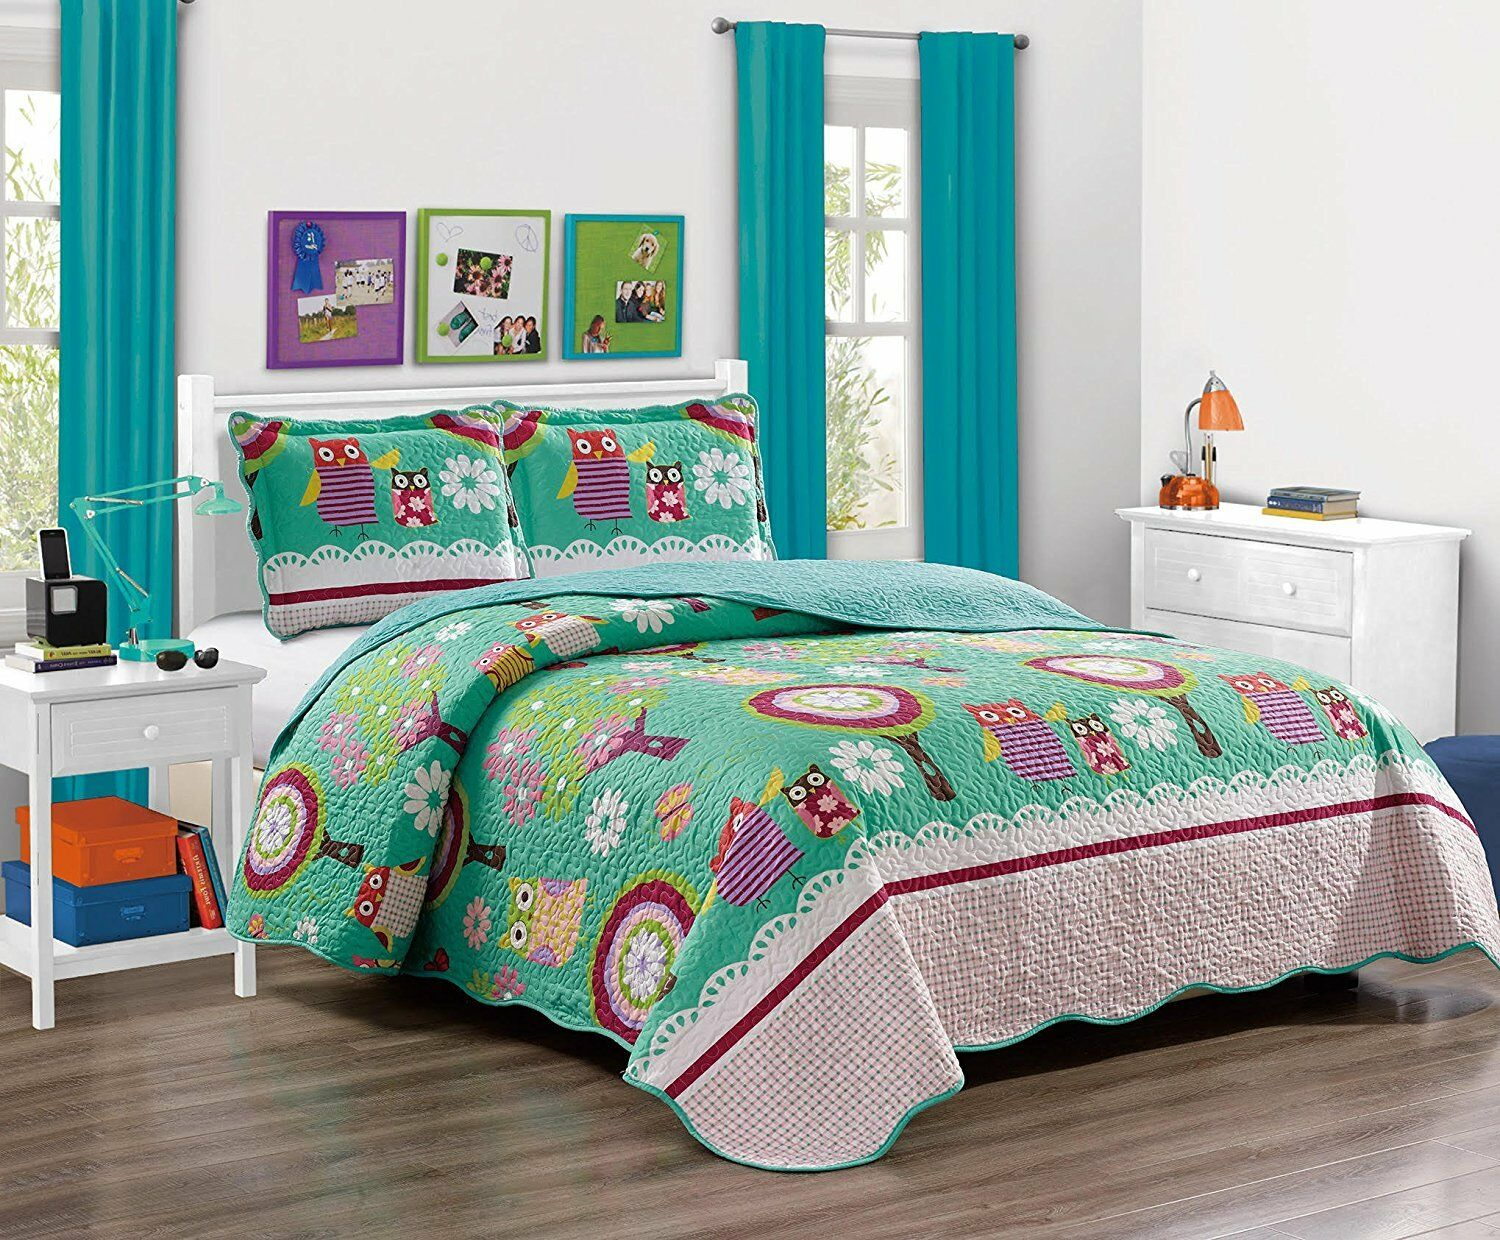 Fancy Linen 7pc Full Size Bedspread Set With Sheets Owl Teal